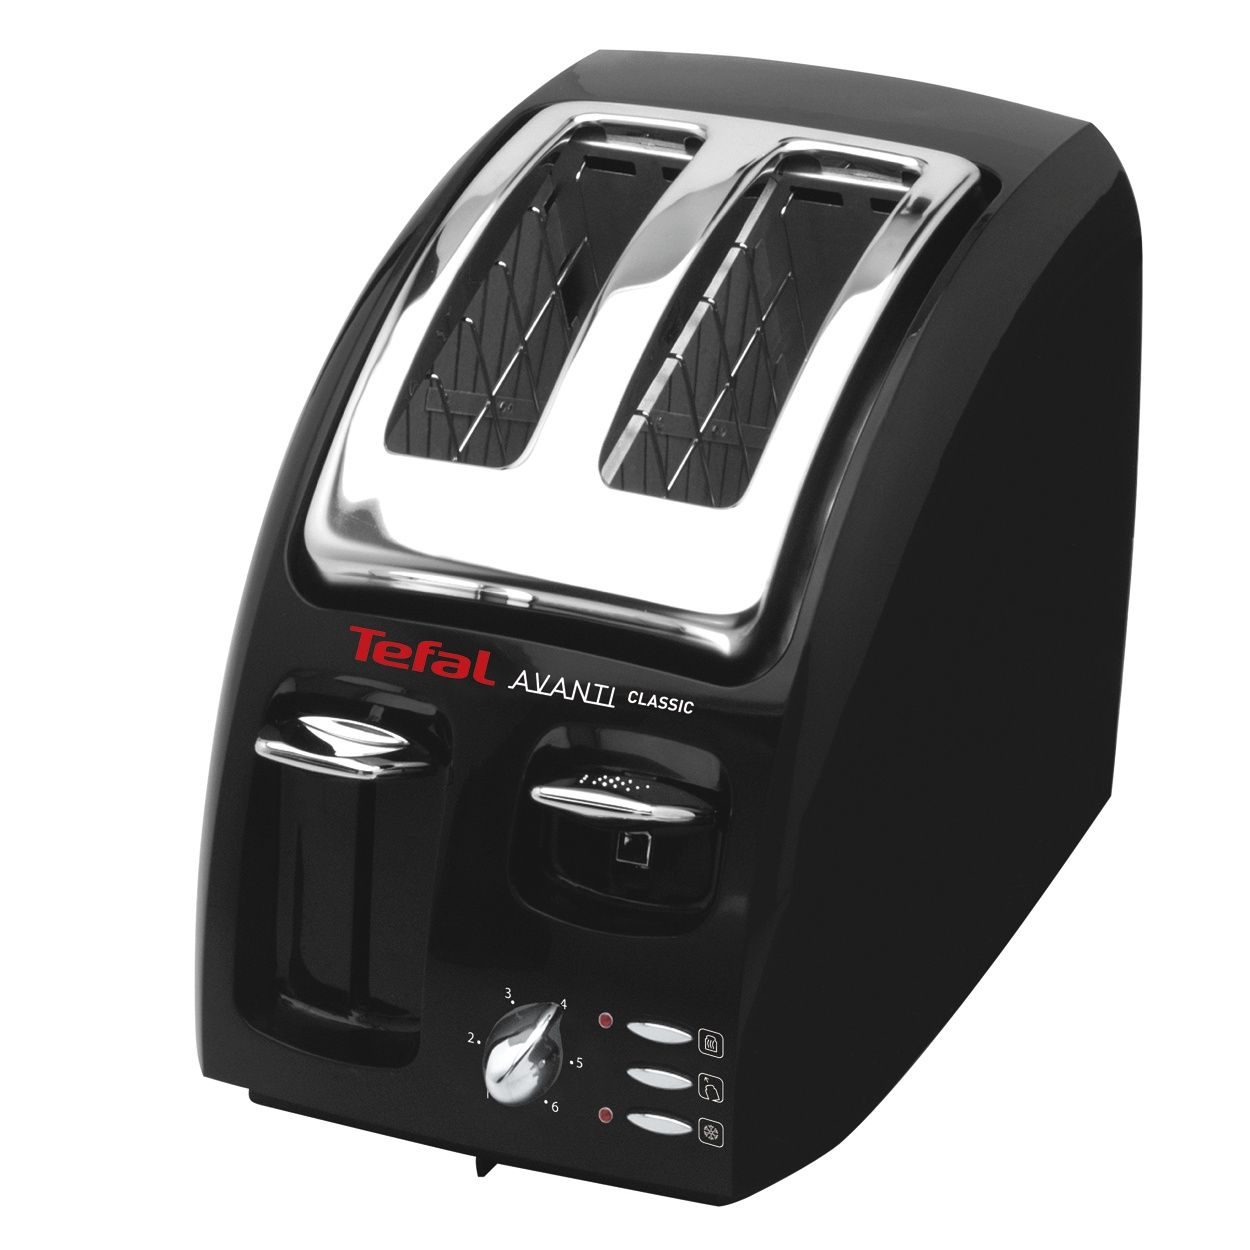 Tefal Tefal black Avanti 2 slice toaster TT875718- at Debenhams.com ...